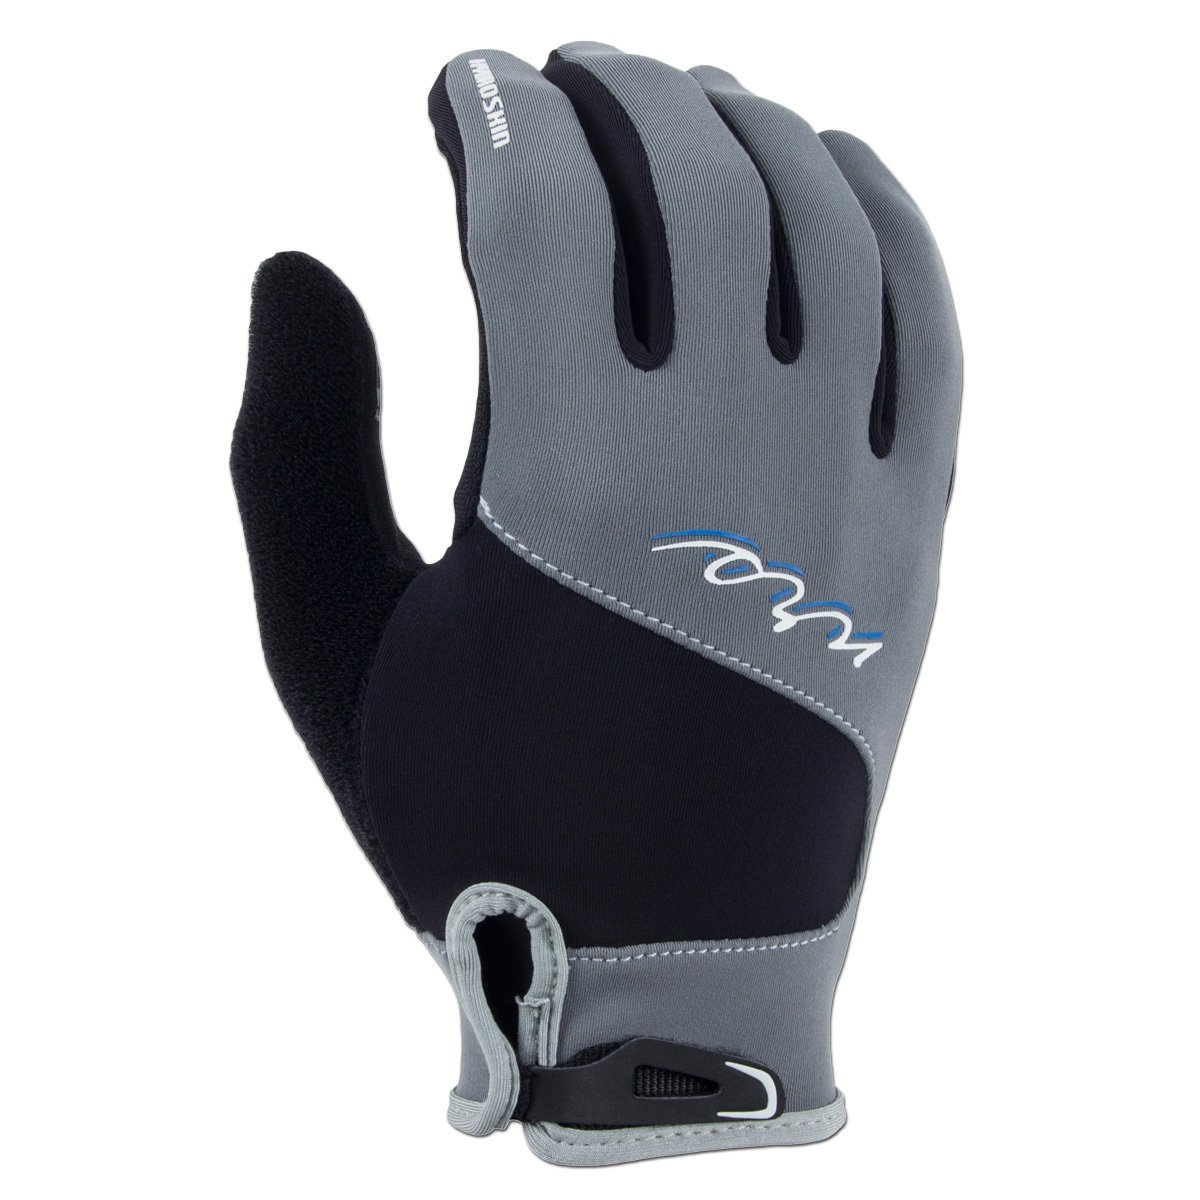 NRS HydroSkin Gloves - Women's Grey / Black Large